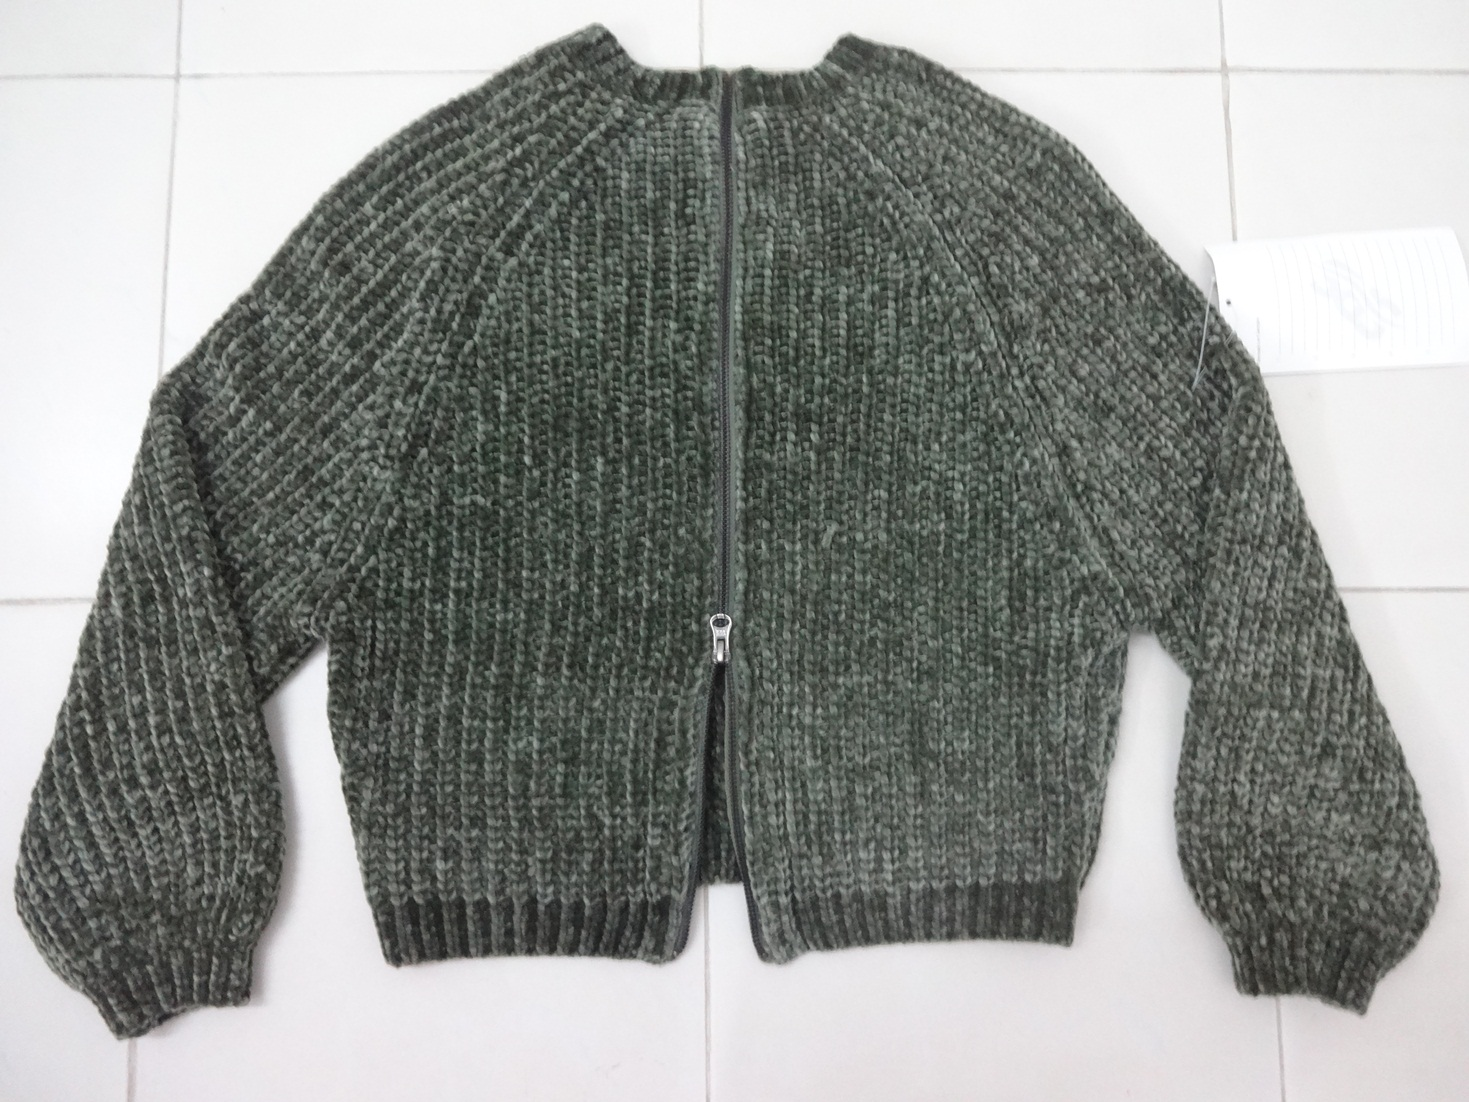 STYLE-1150050007-FRONT